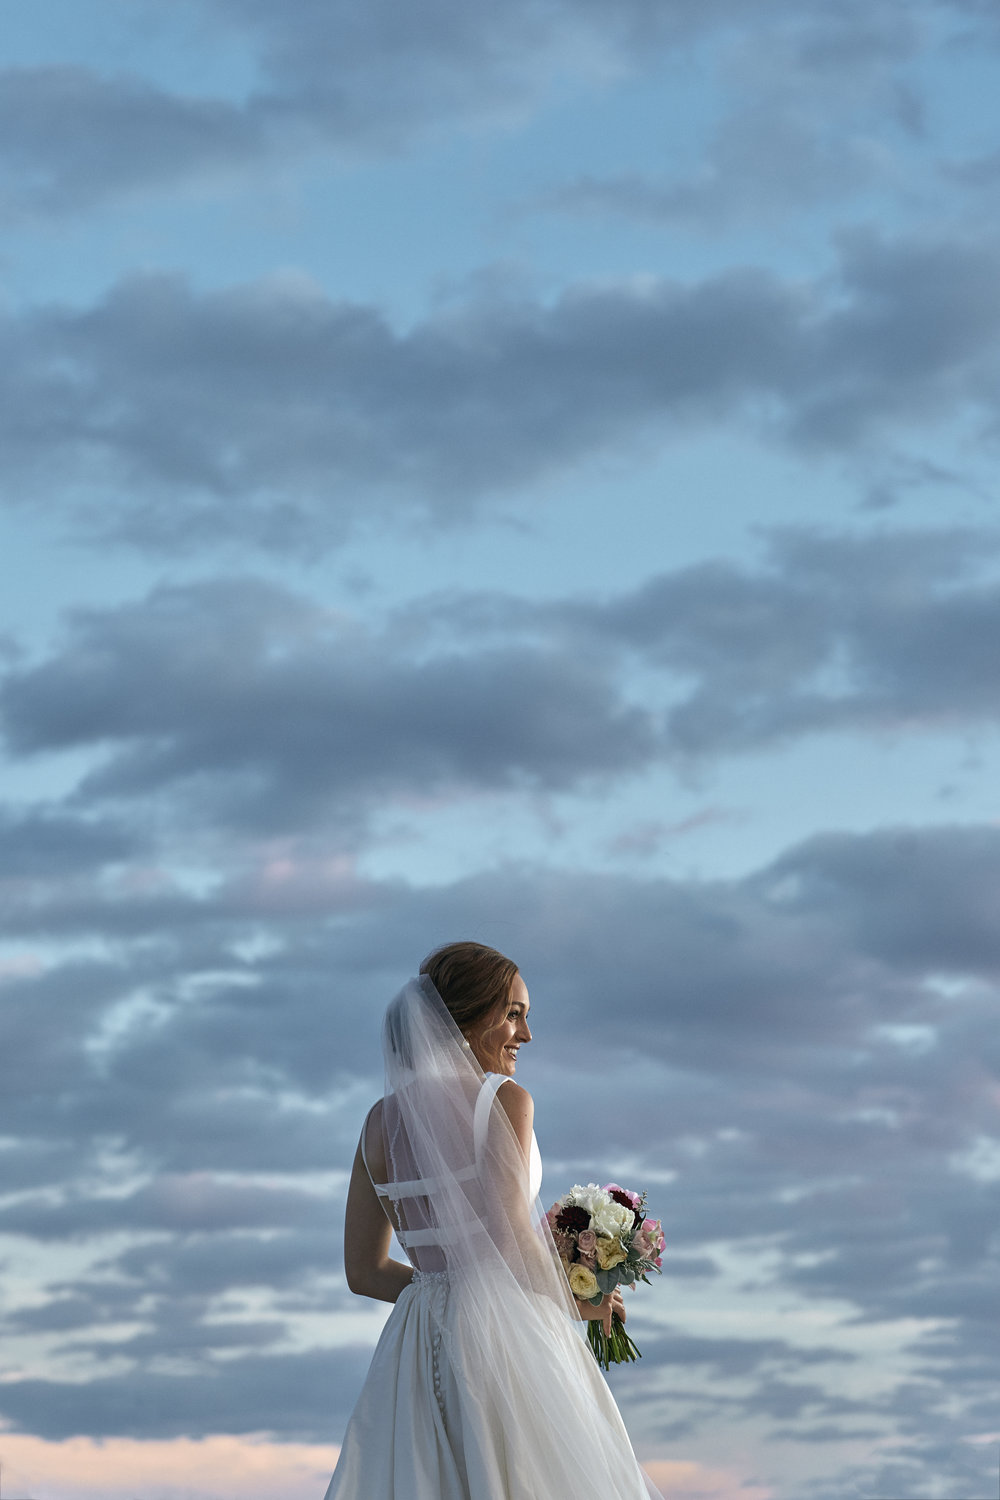 lubbock bridal photography, sunset, texas sky, bridal portraits, wedding photography, blue sky